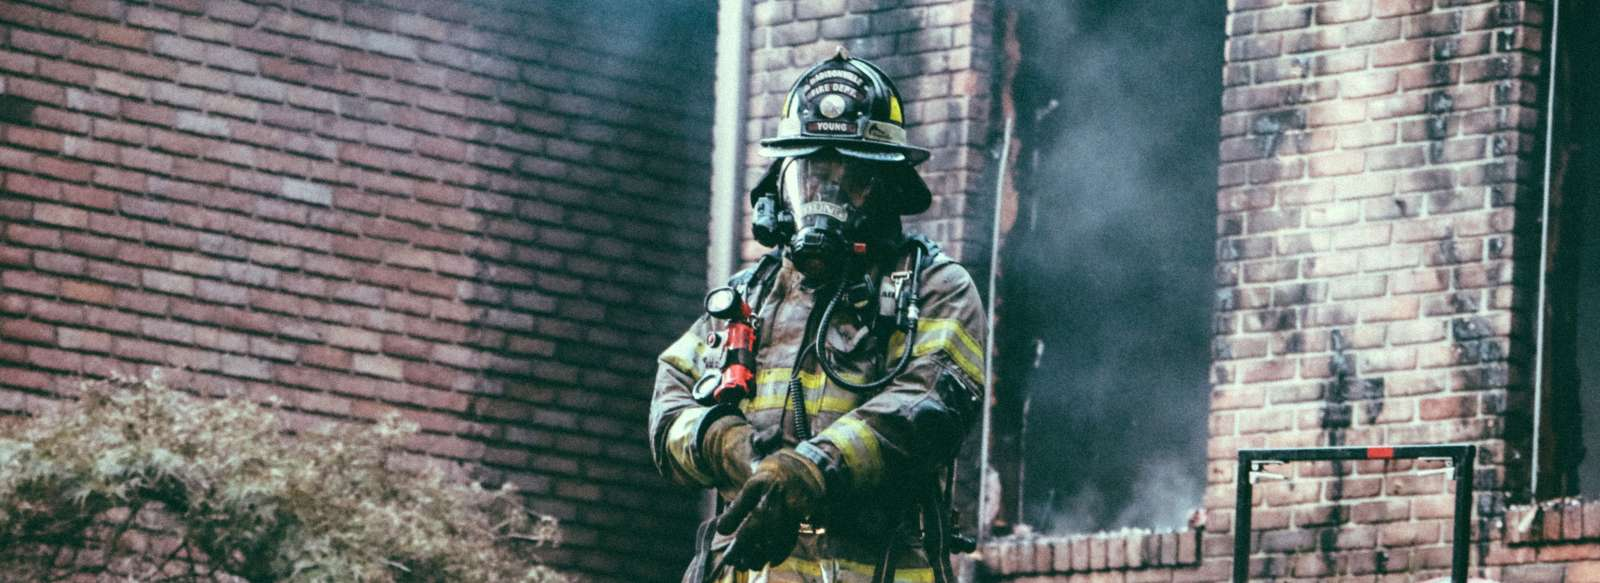 Fireman in front of brick house with fire damage. Once the fire is out, Purity Cleaning & Restoration can provide emergency fire and Smoke restoration services.